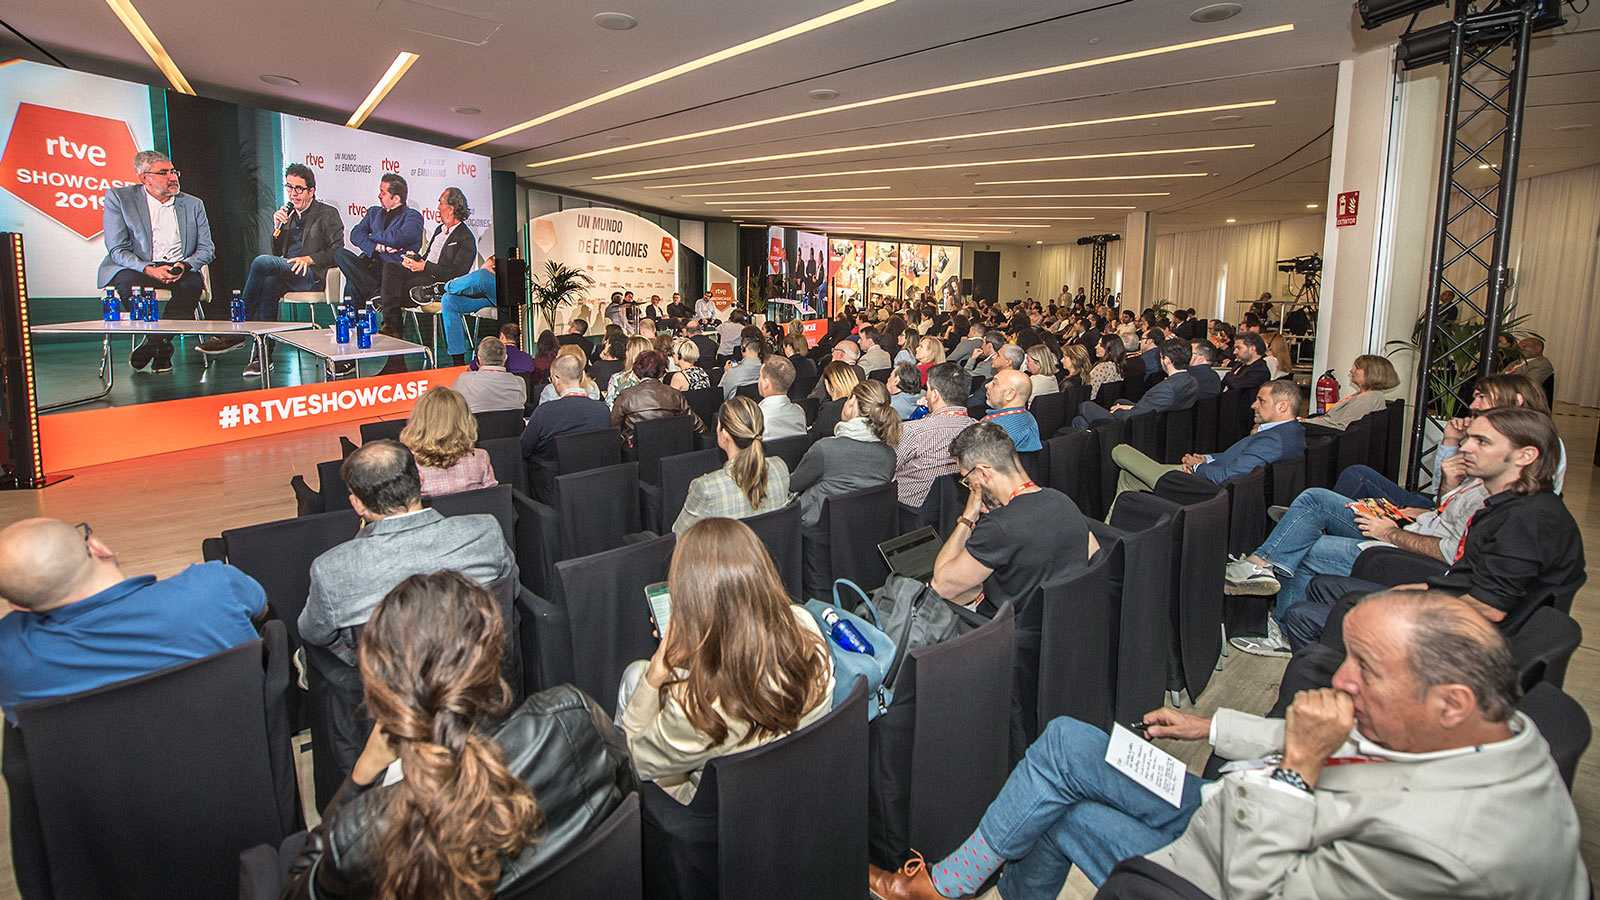 RTVE Showcase: great success in the second edition (Video summary)